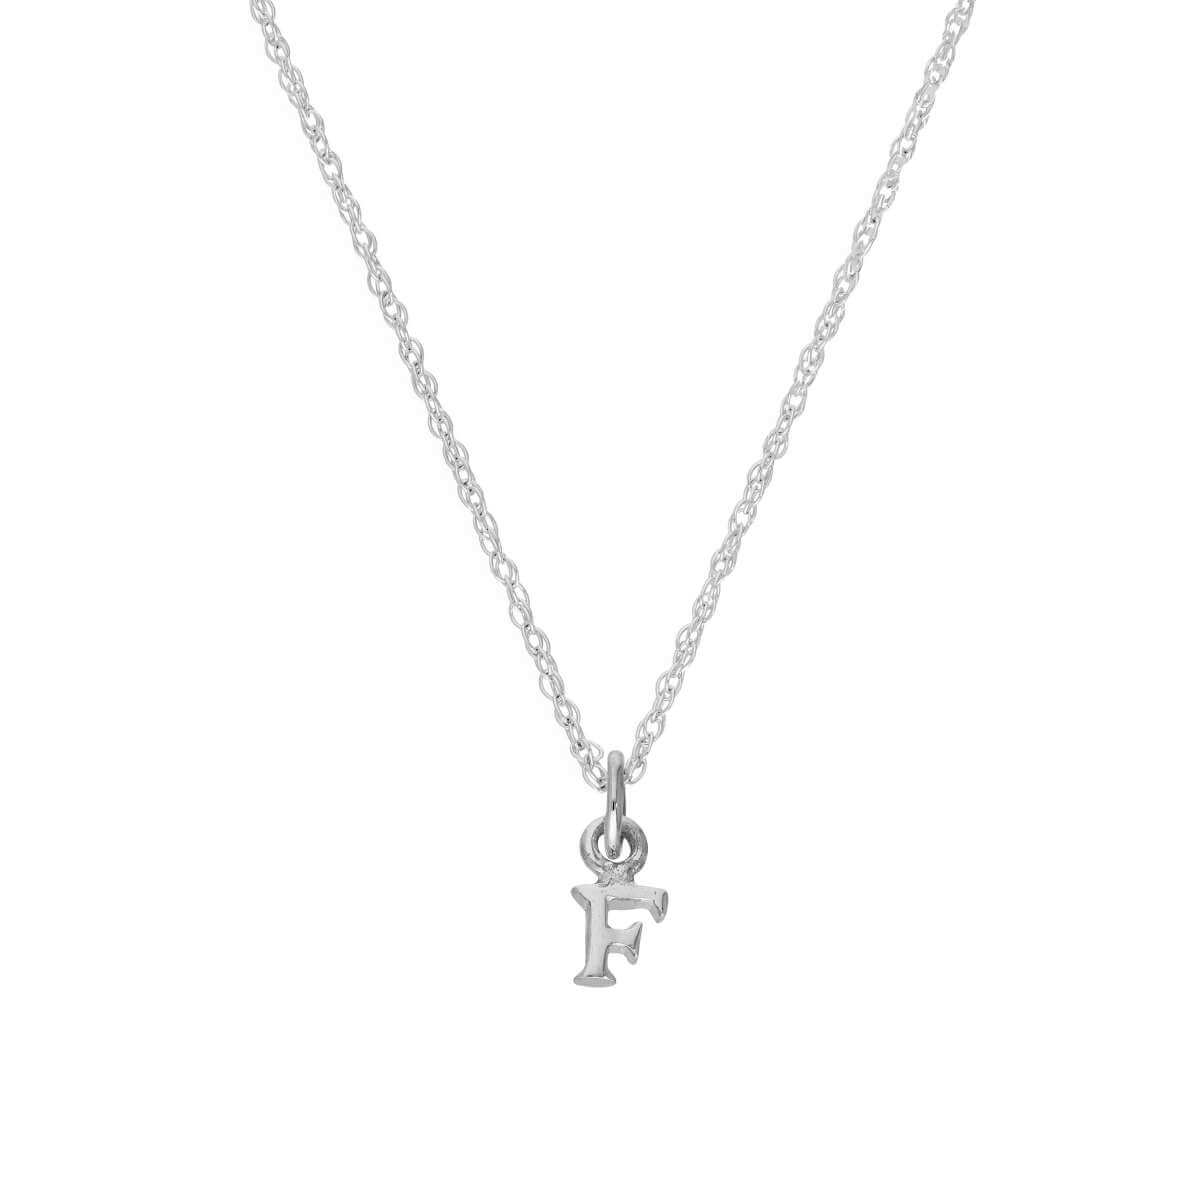 Tiny Sterling Silver Alphabet Letter F Pendant Necklace 14 - 22 Inches